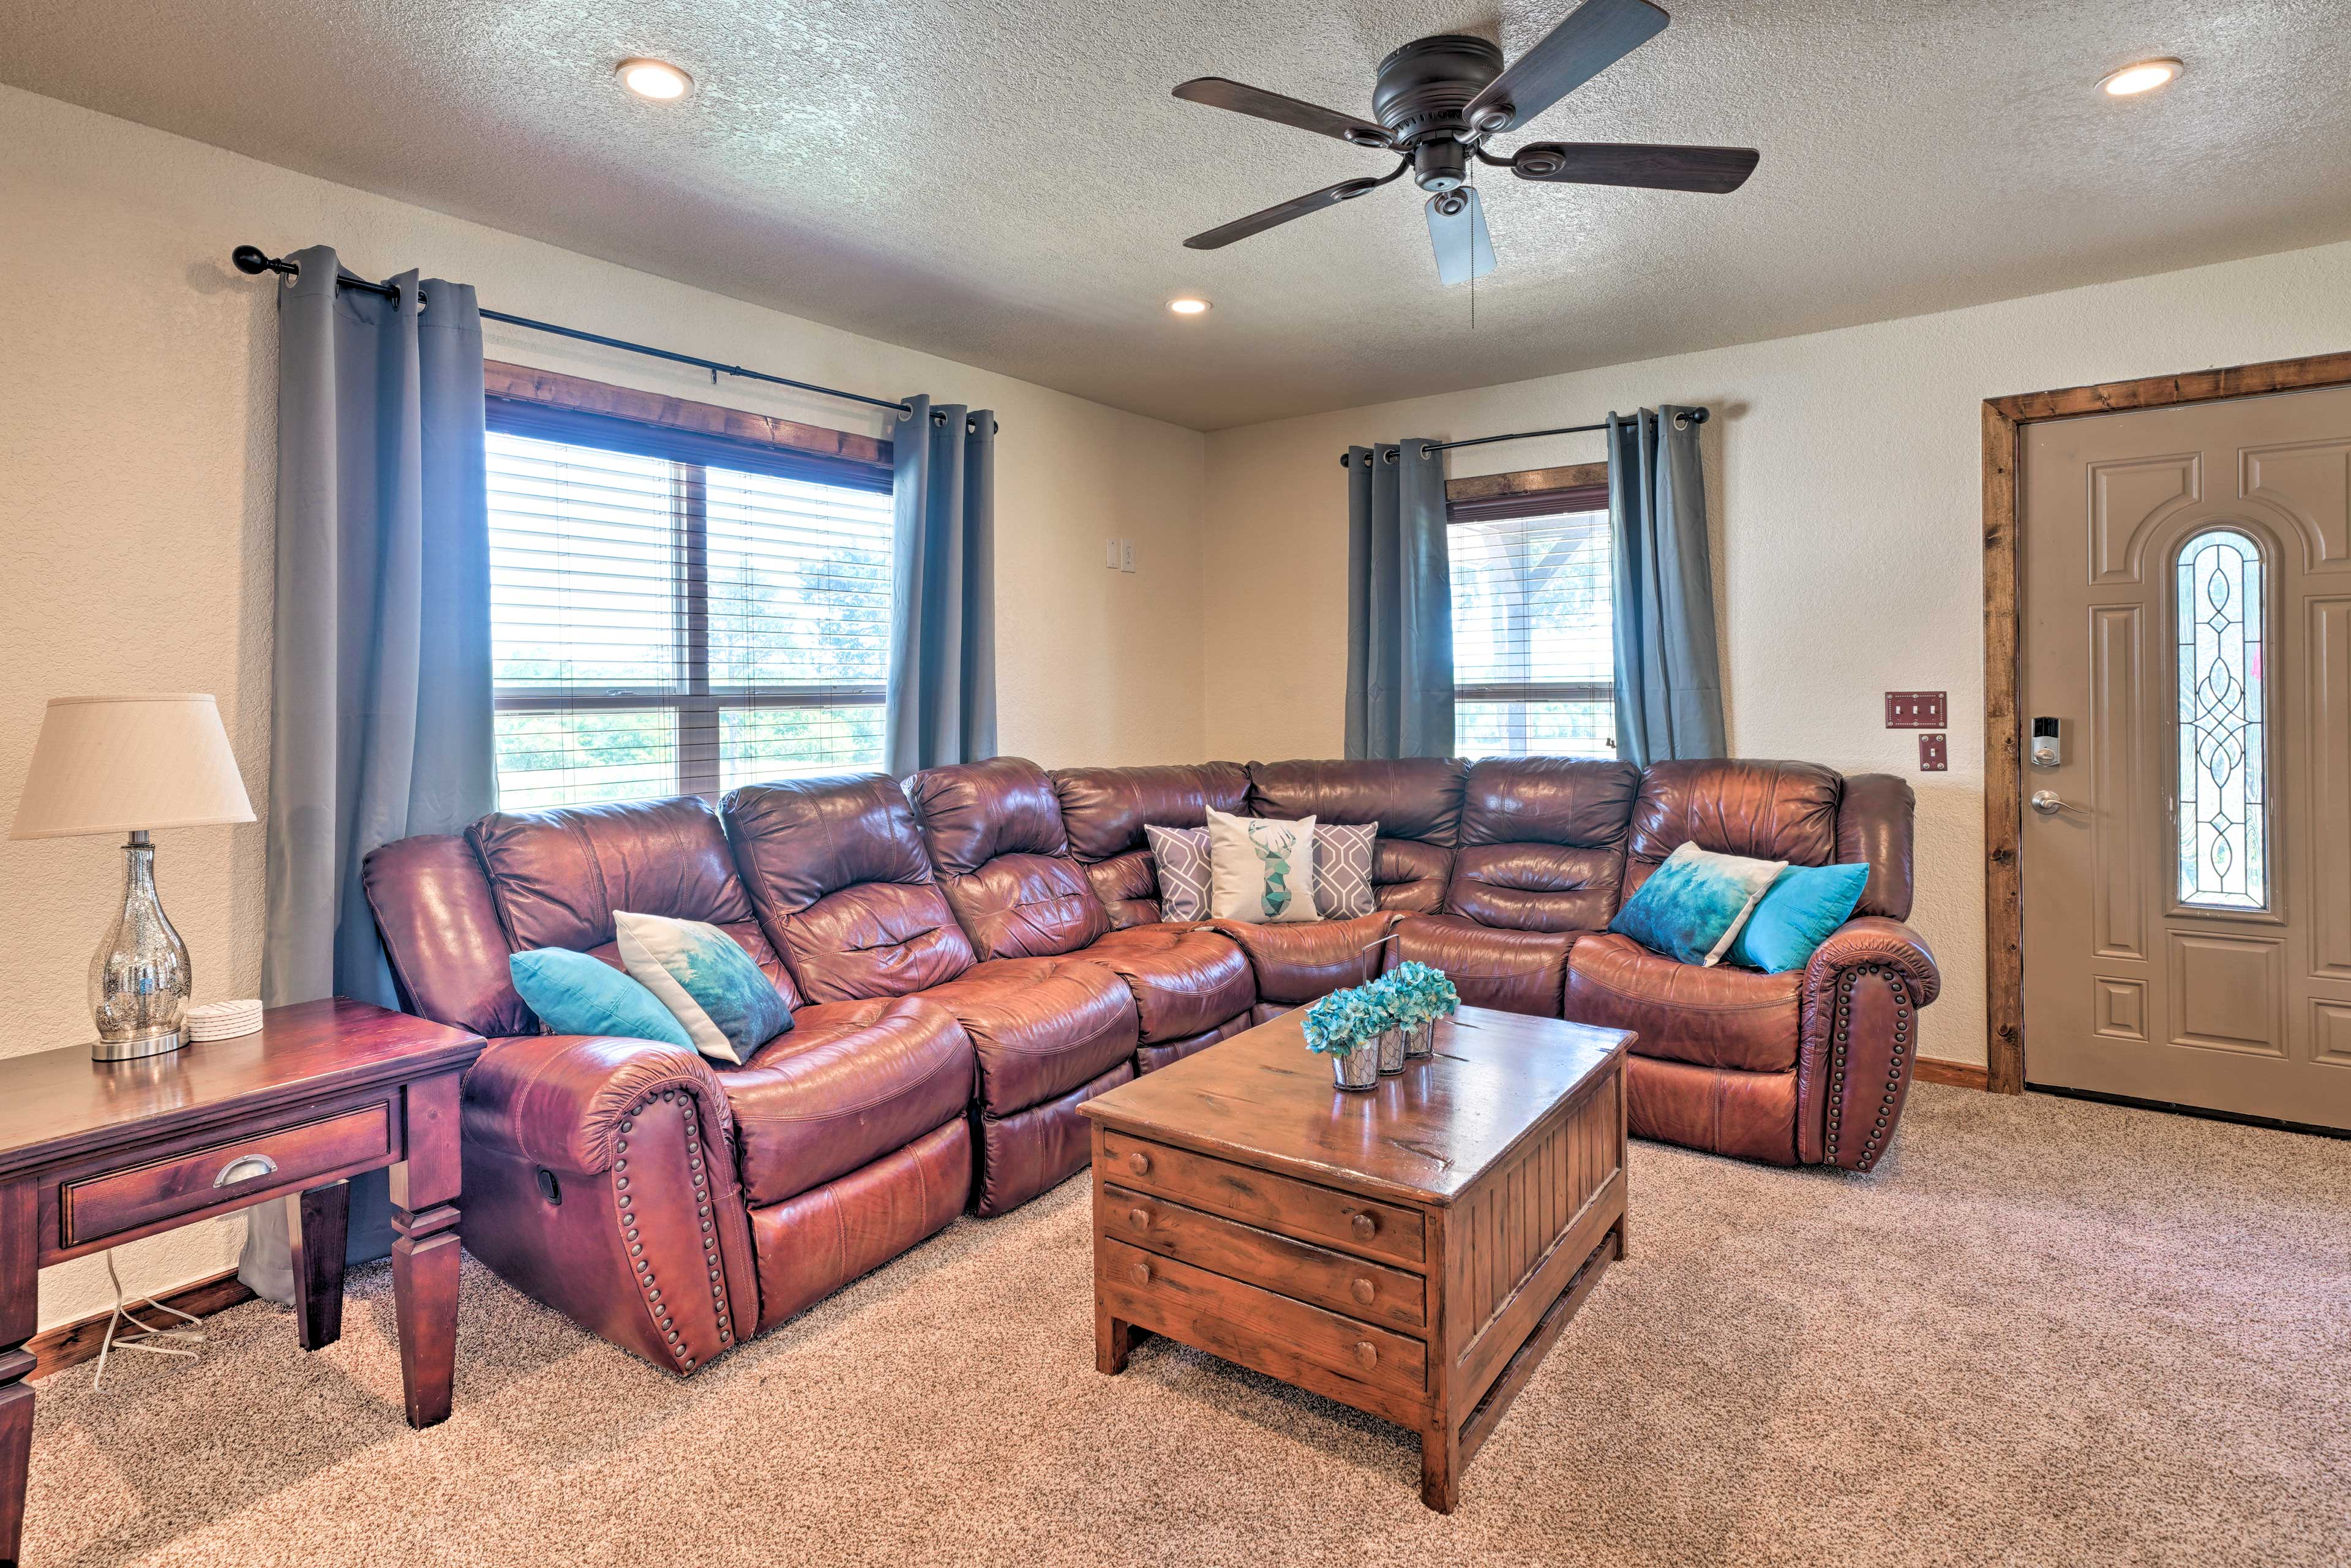 Lounge on the plush leather L-shaped sectional as you unwind.